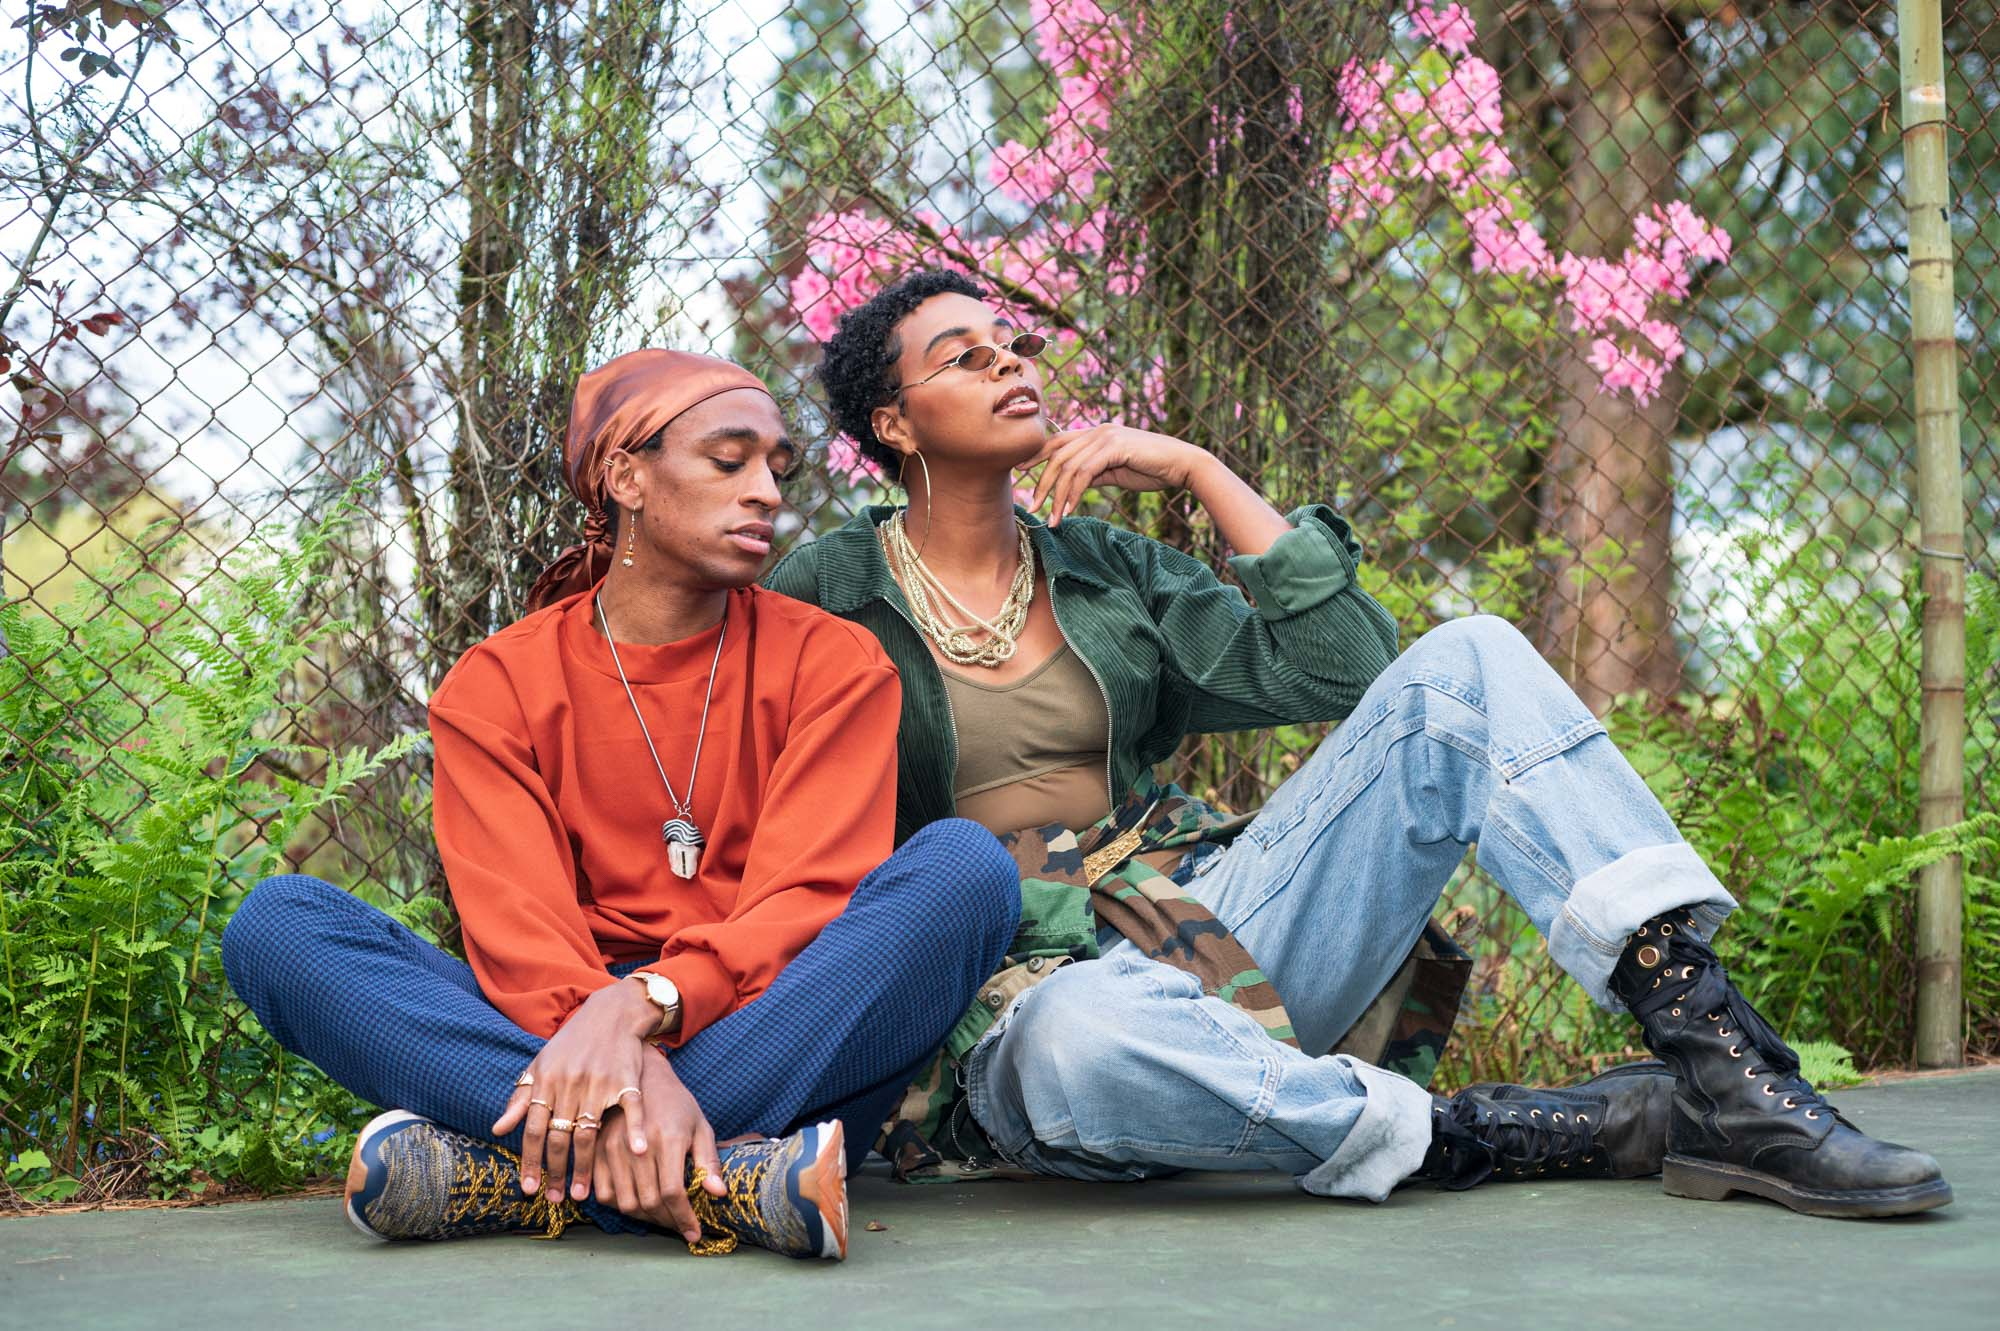 two models sit against a chain link fence, surrounded by plant life